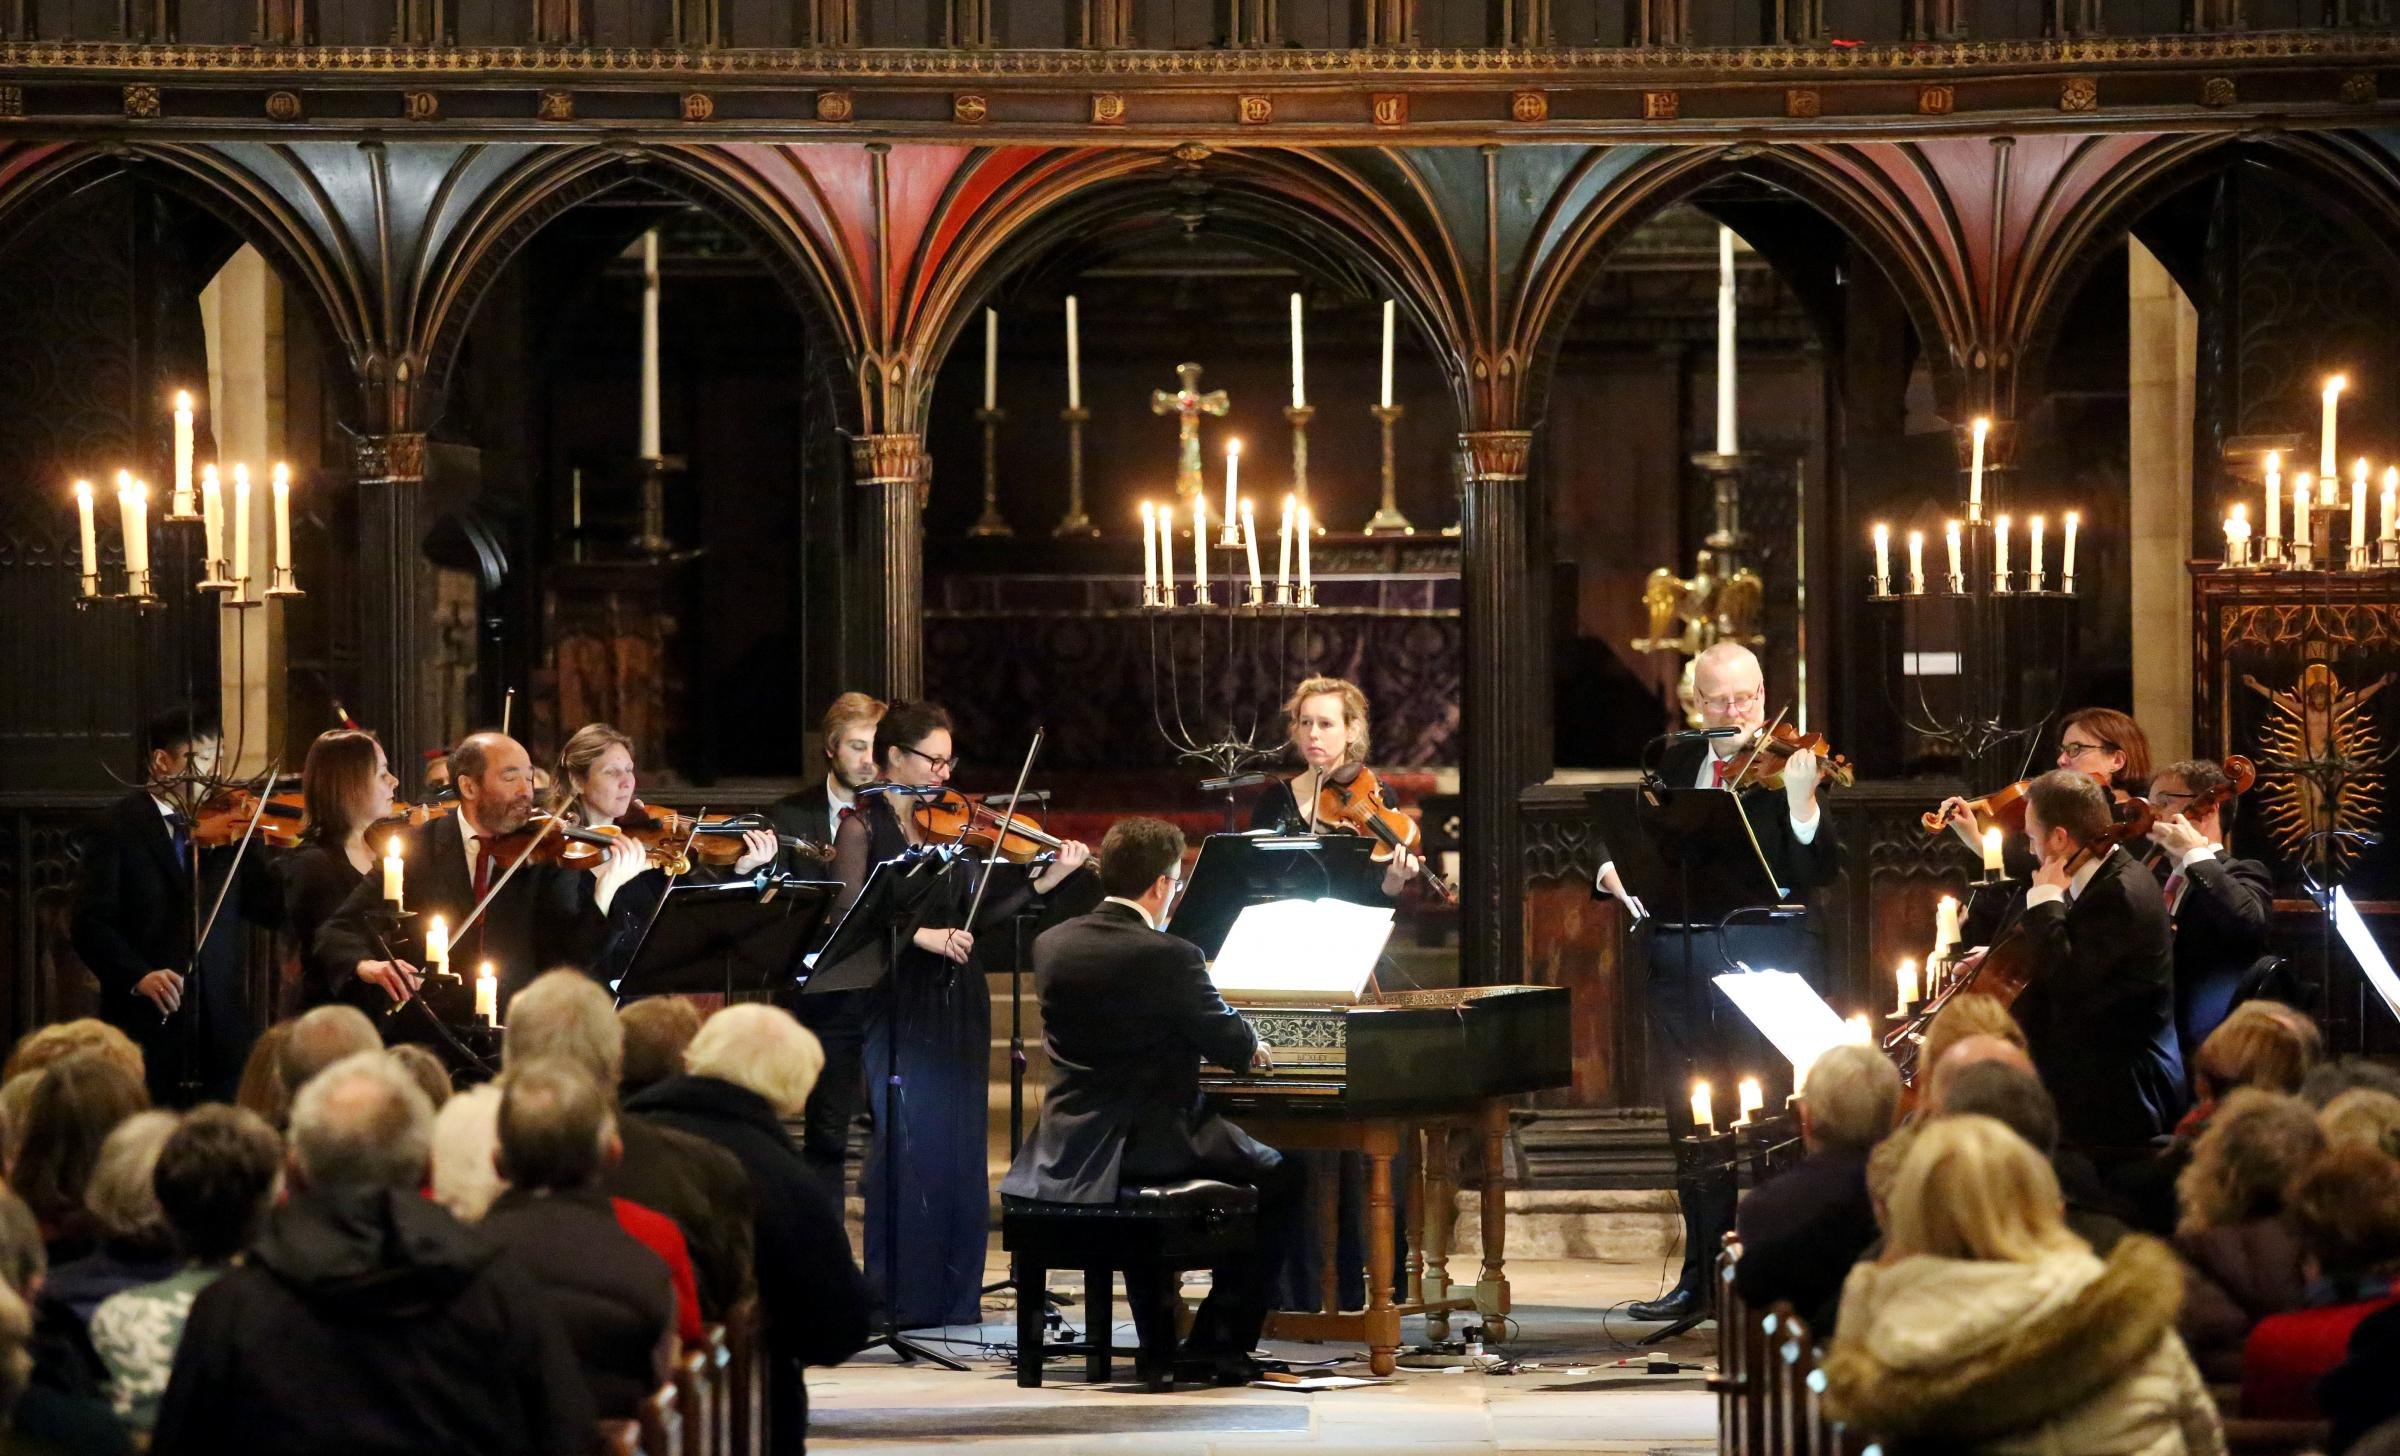 Royal Northern Sinfonia performing inside Hexham Abbey.